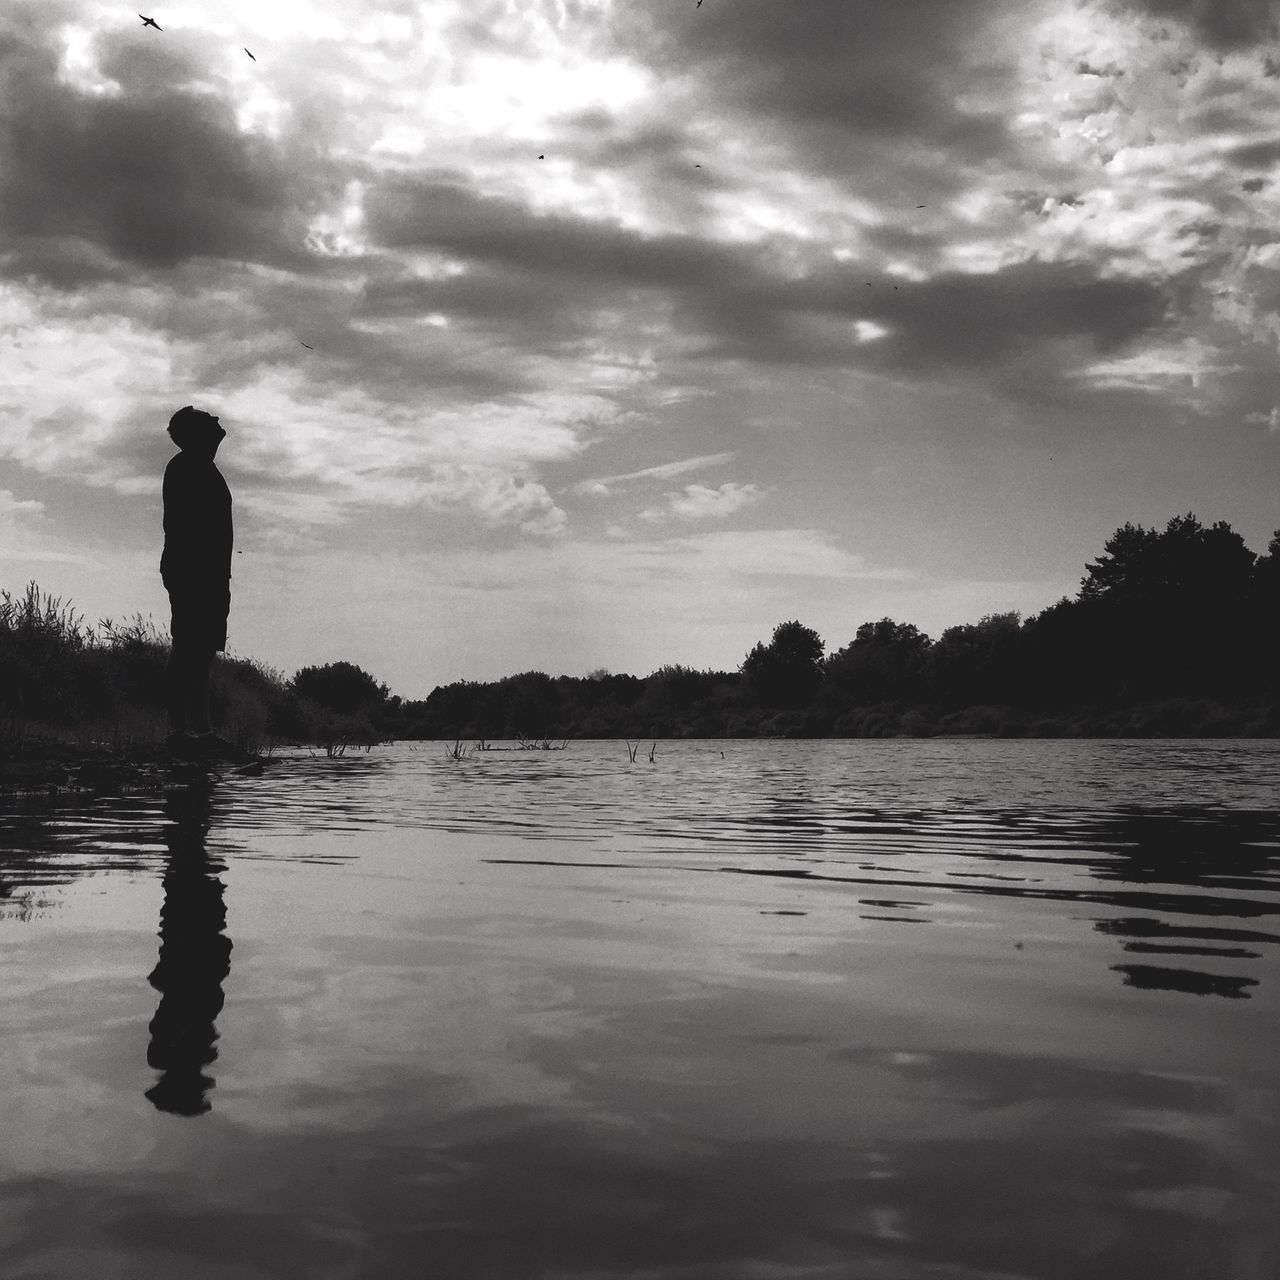 Low Angle View Of Silhouette Man Standing By Lake Against Cloudy Sky